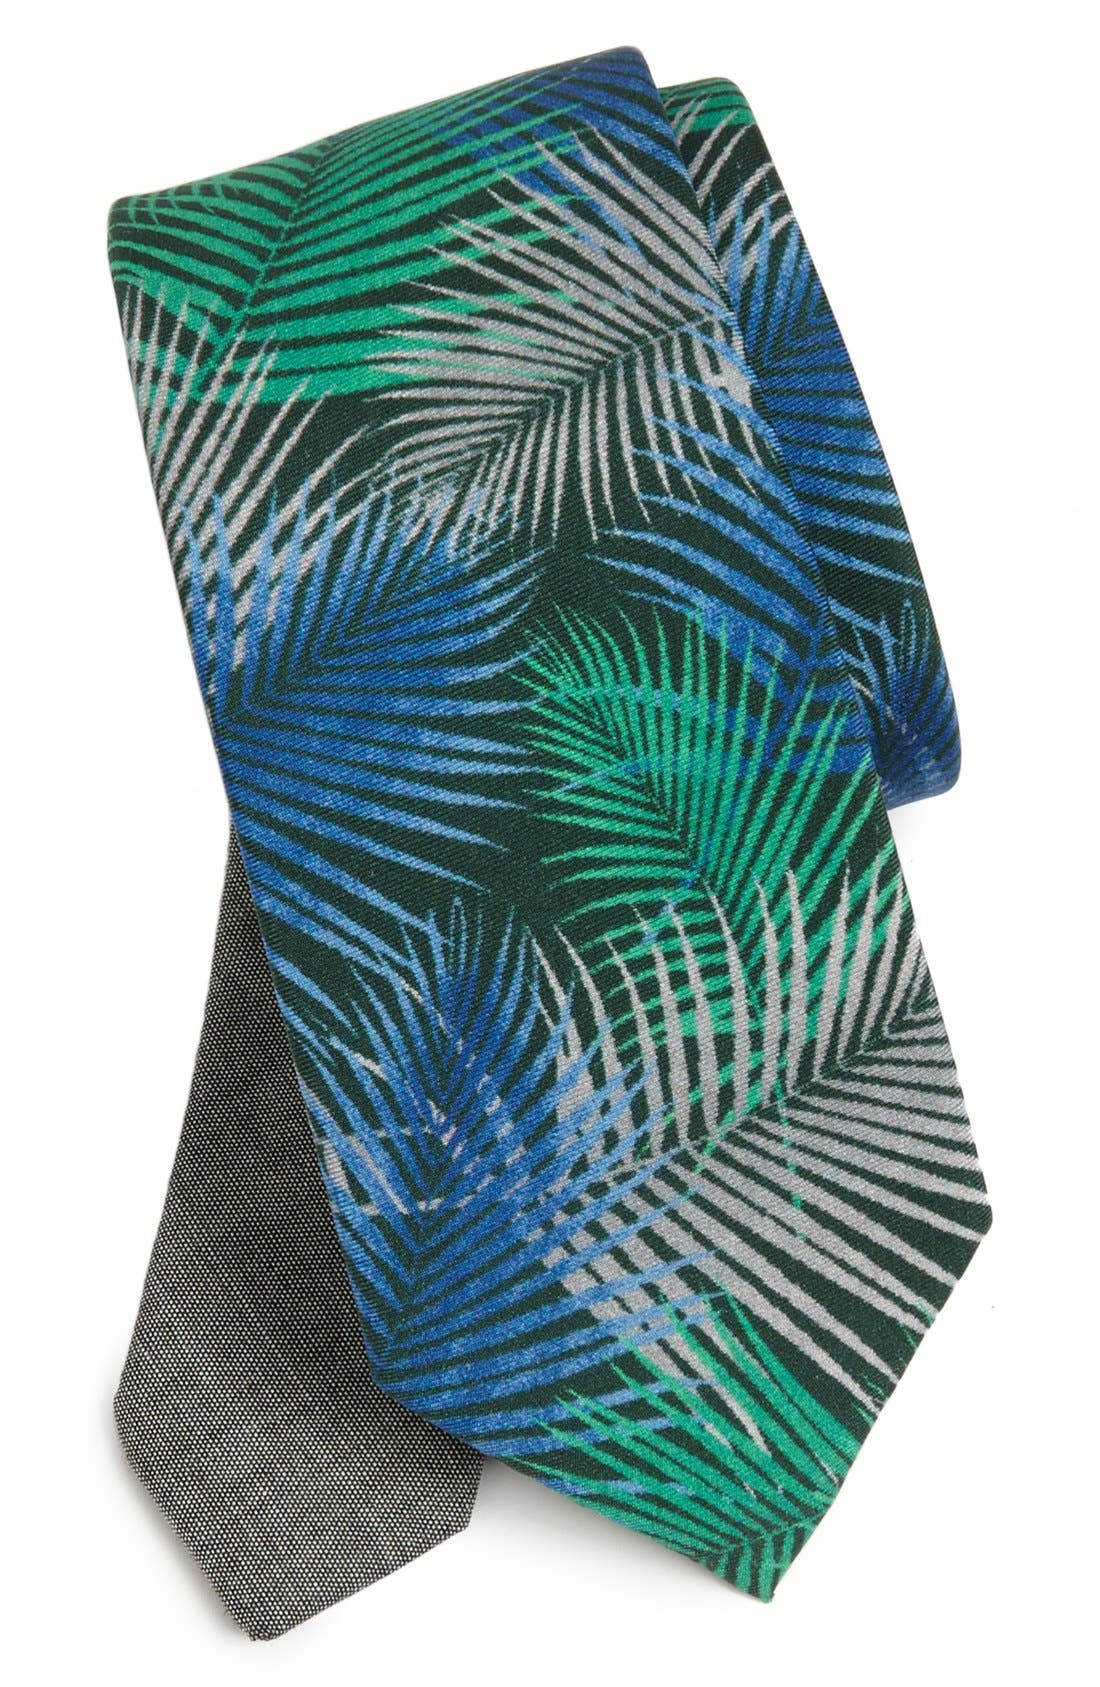 Alternate Image 1 Selected - EDIT by The Tie Bar 'Novelty' Silk Tie (Nordstrom Exclusive)